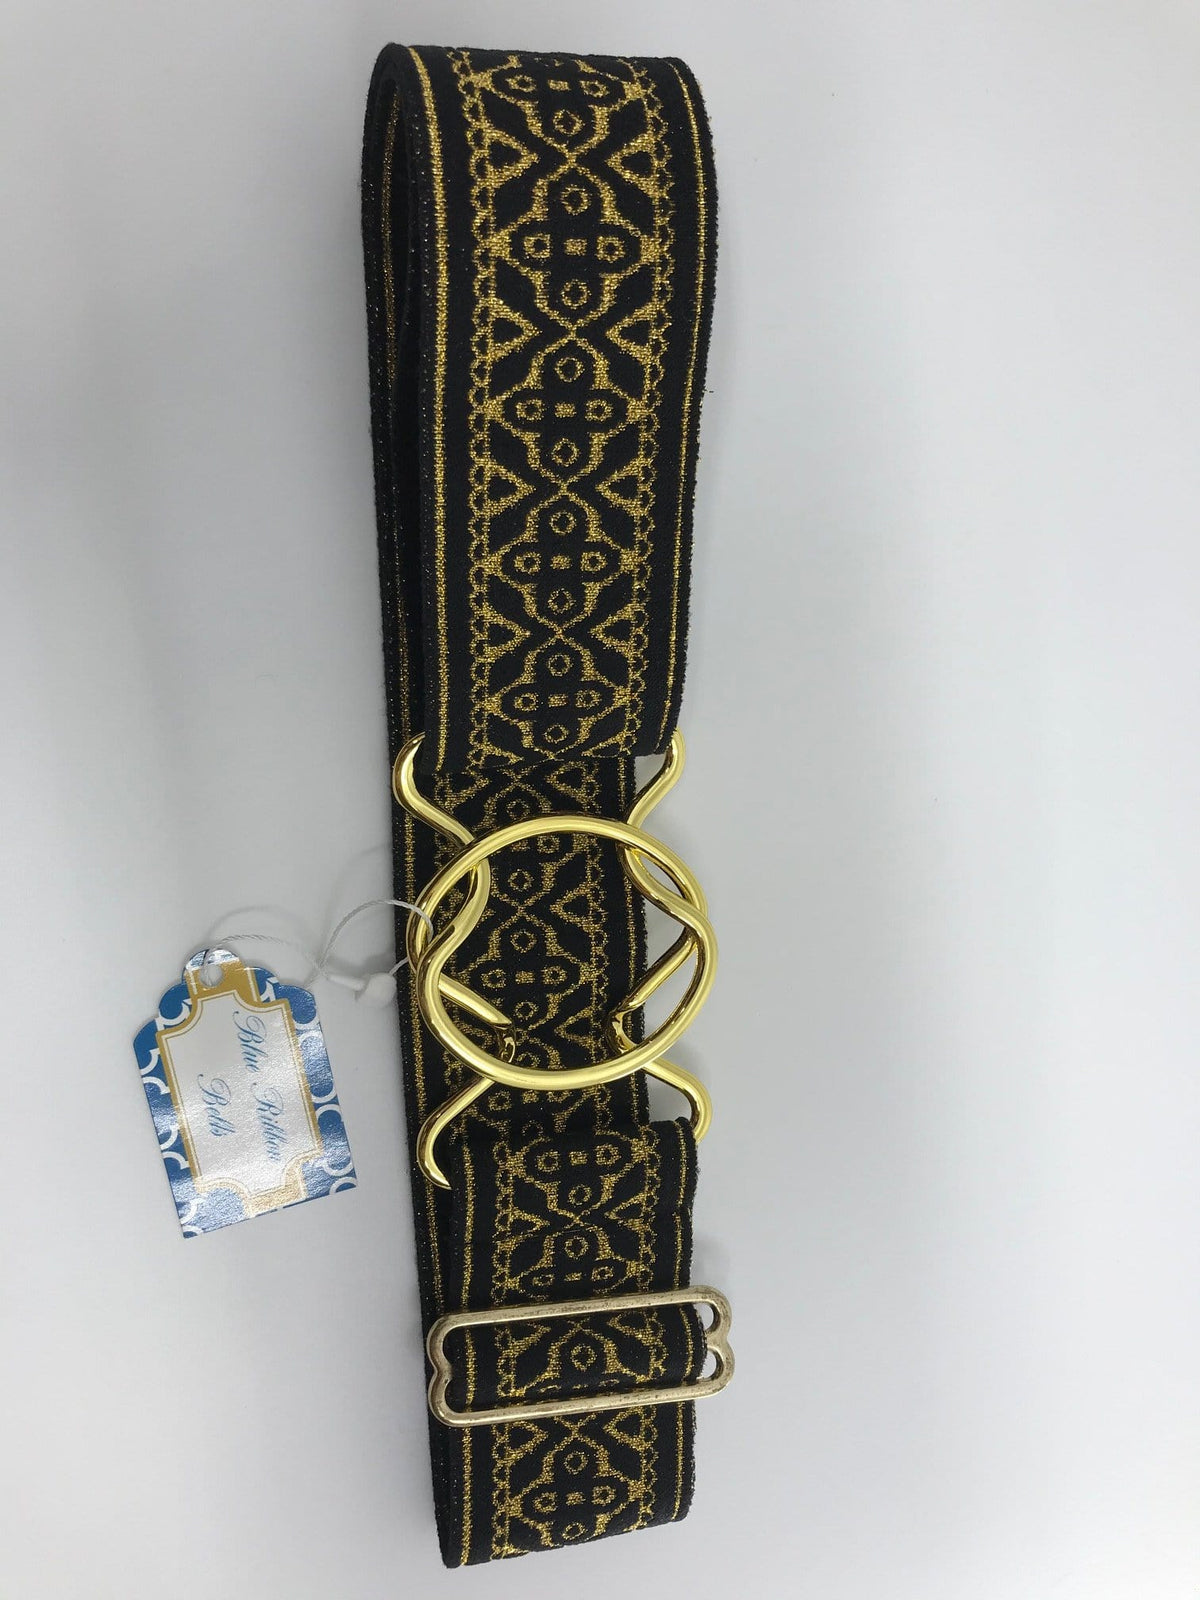 Blue Ribbon Belts Belt Black/Gold Gaelic Blue Ribbon Belts - 2 Inch equestrian team apparel online tack store mobile tack store custom farm apparel custom show stable clothing equestrian lifestyle horse show clothing riding clothes horses equestrian tack store